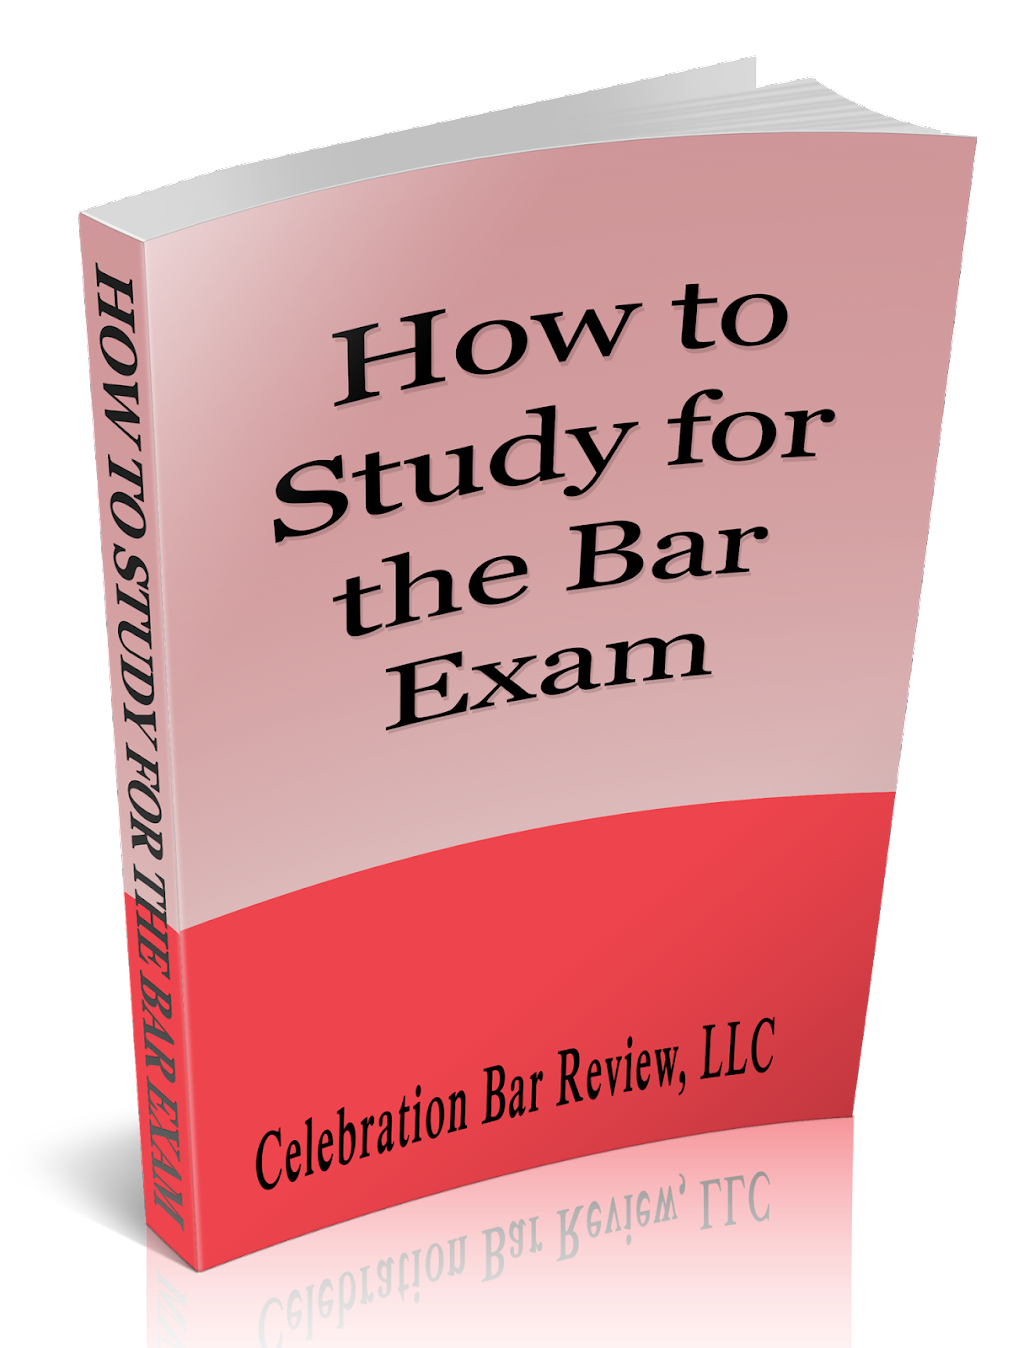 tn bar exam essay questions Amazoncom: tennessee bar exam interesting finds updated daily amazon try prime all go search en hello sign in account & lists sign in account & lists orders try.